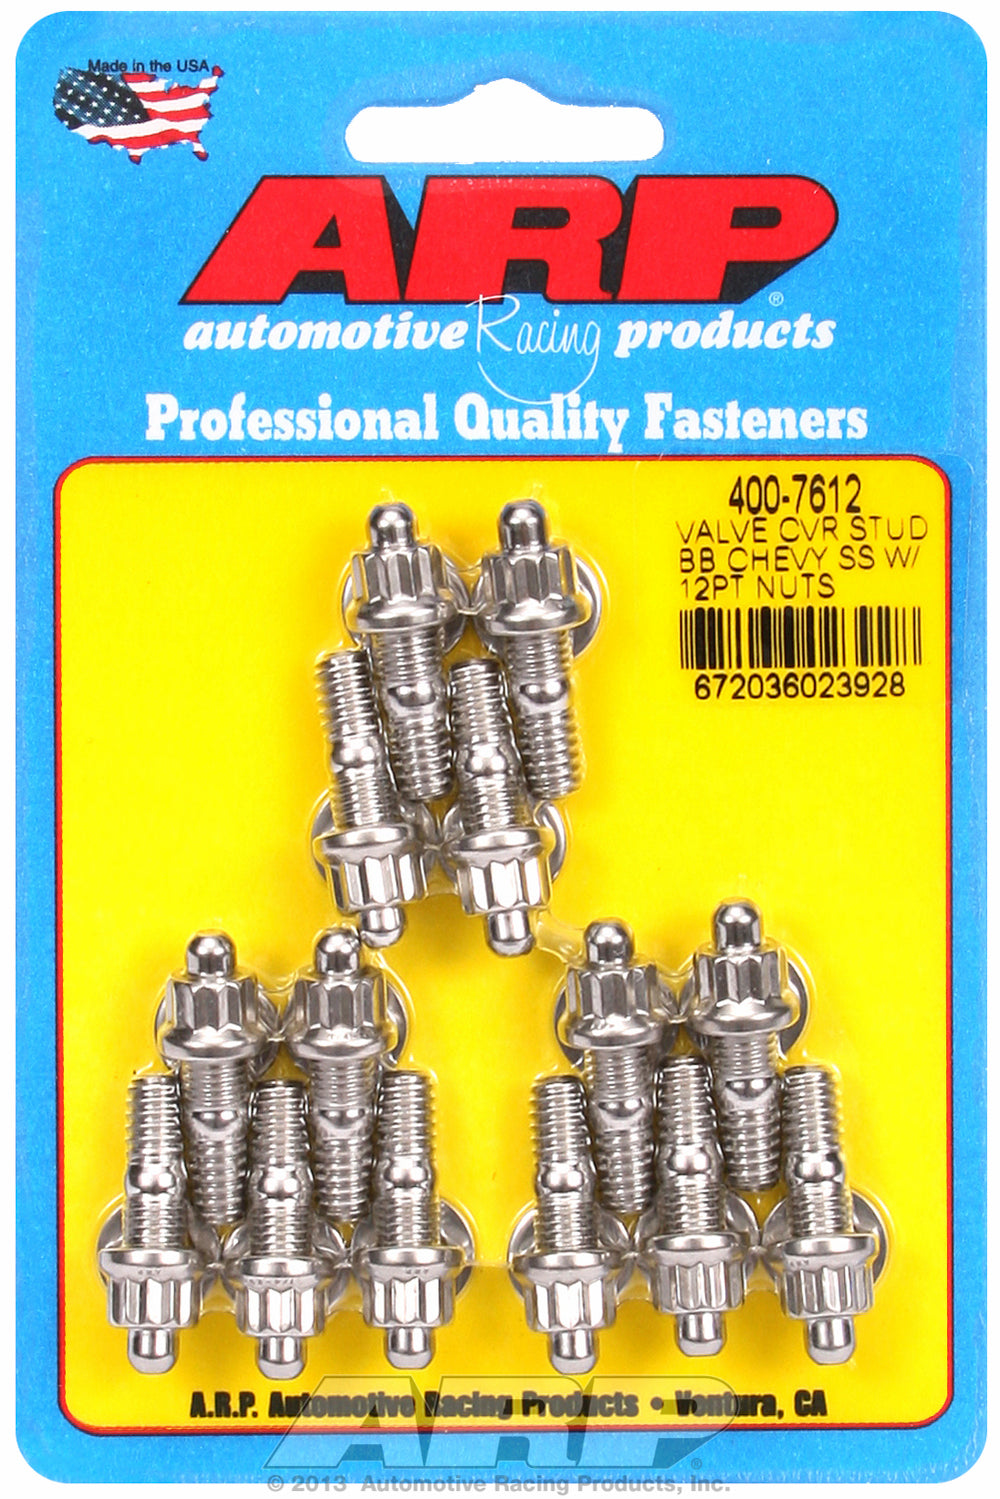 Valve Cover Stud Kit for Stamped Steel Stud kit Stainless - 12-pt Head